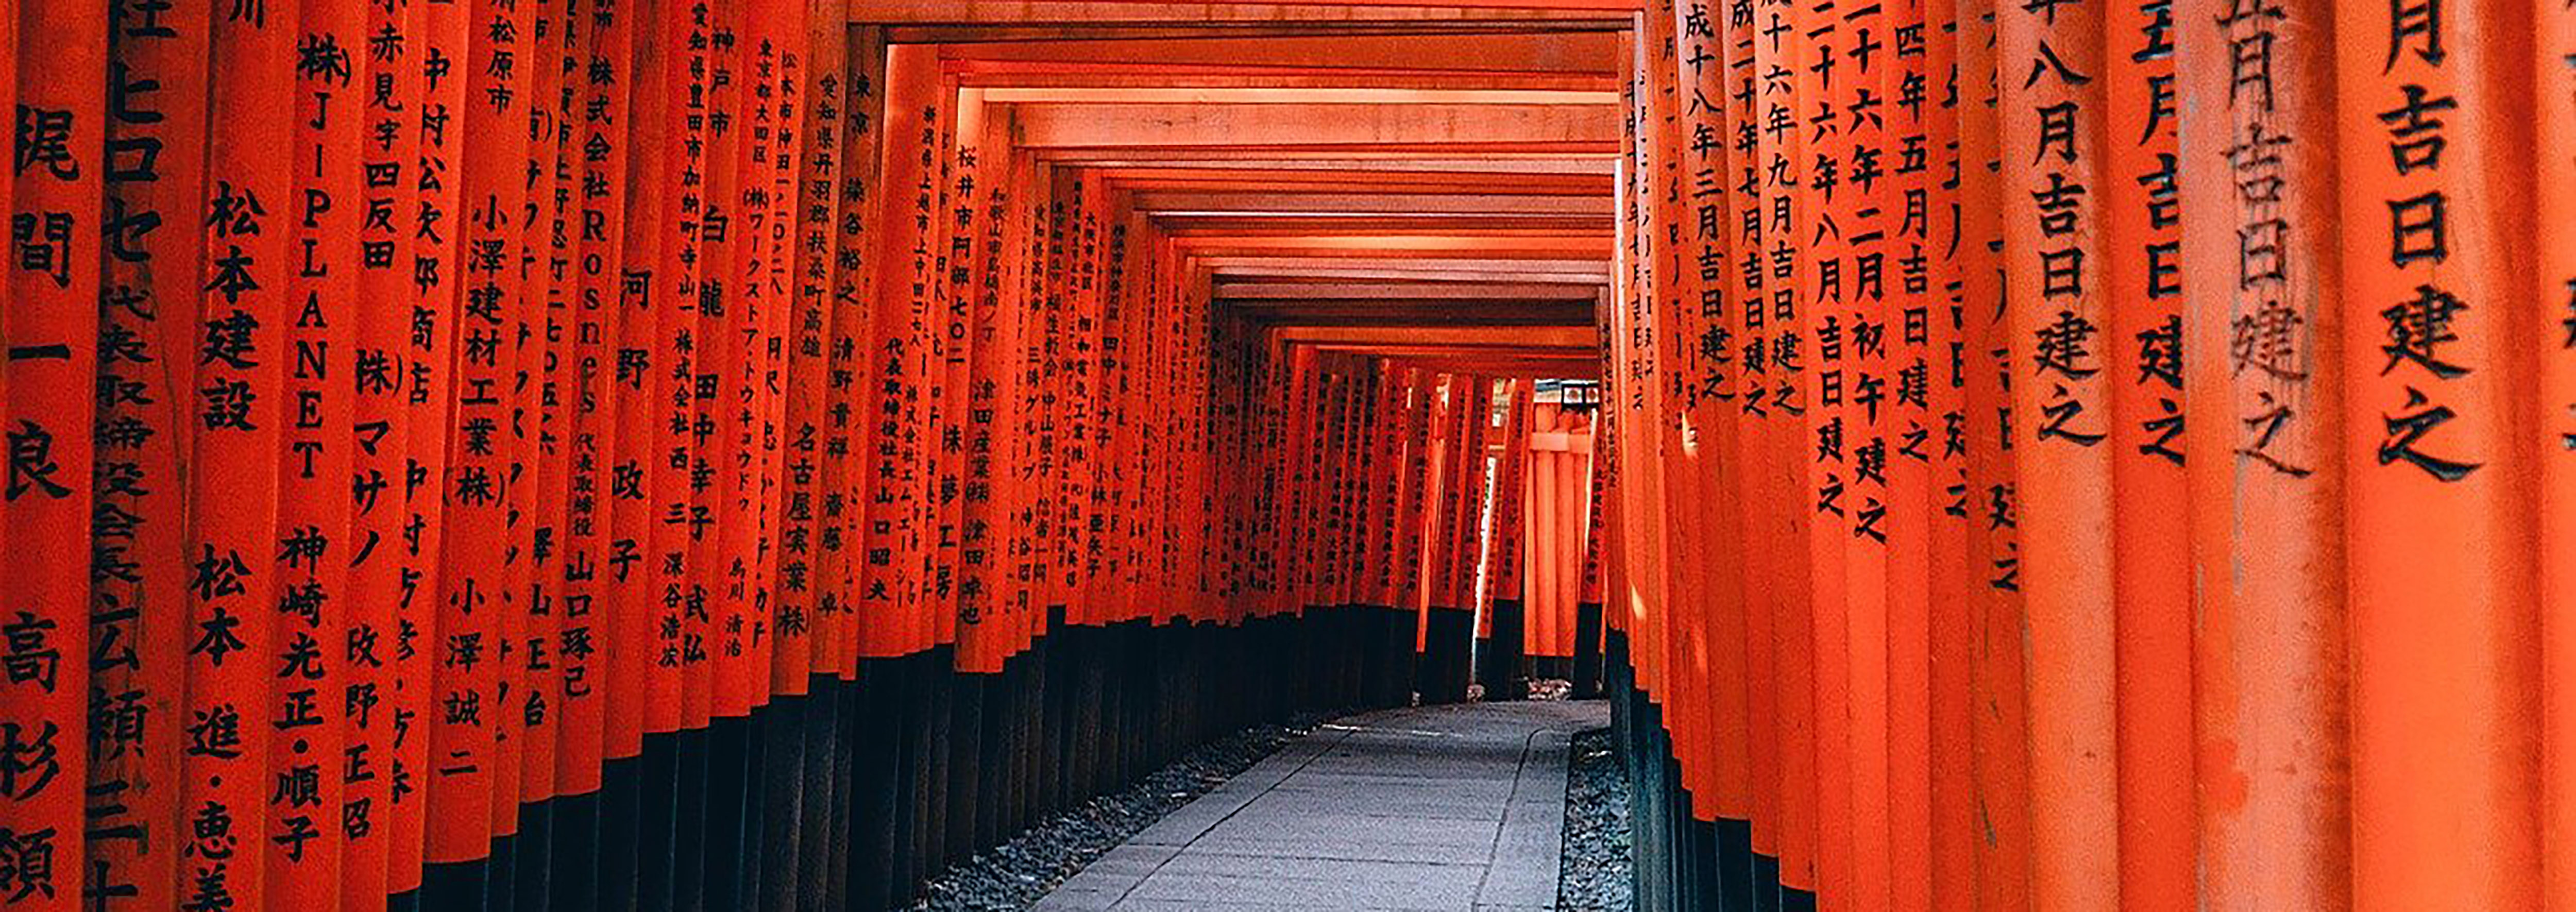 Red poles with Japanese characters create a tunnel